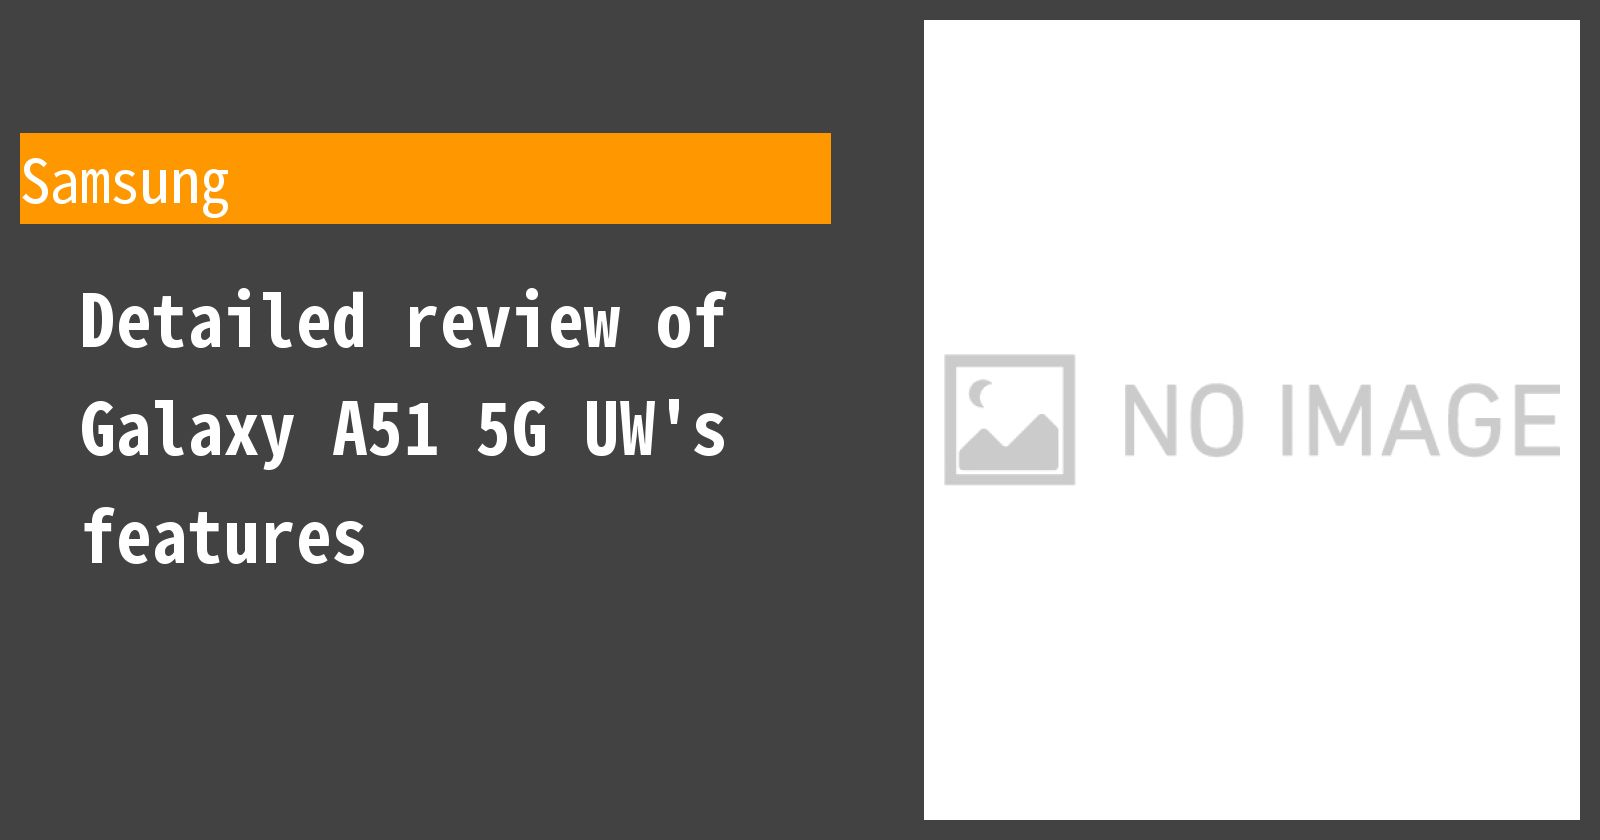 Detailed review of Galaxy A51 5G UW's features